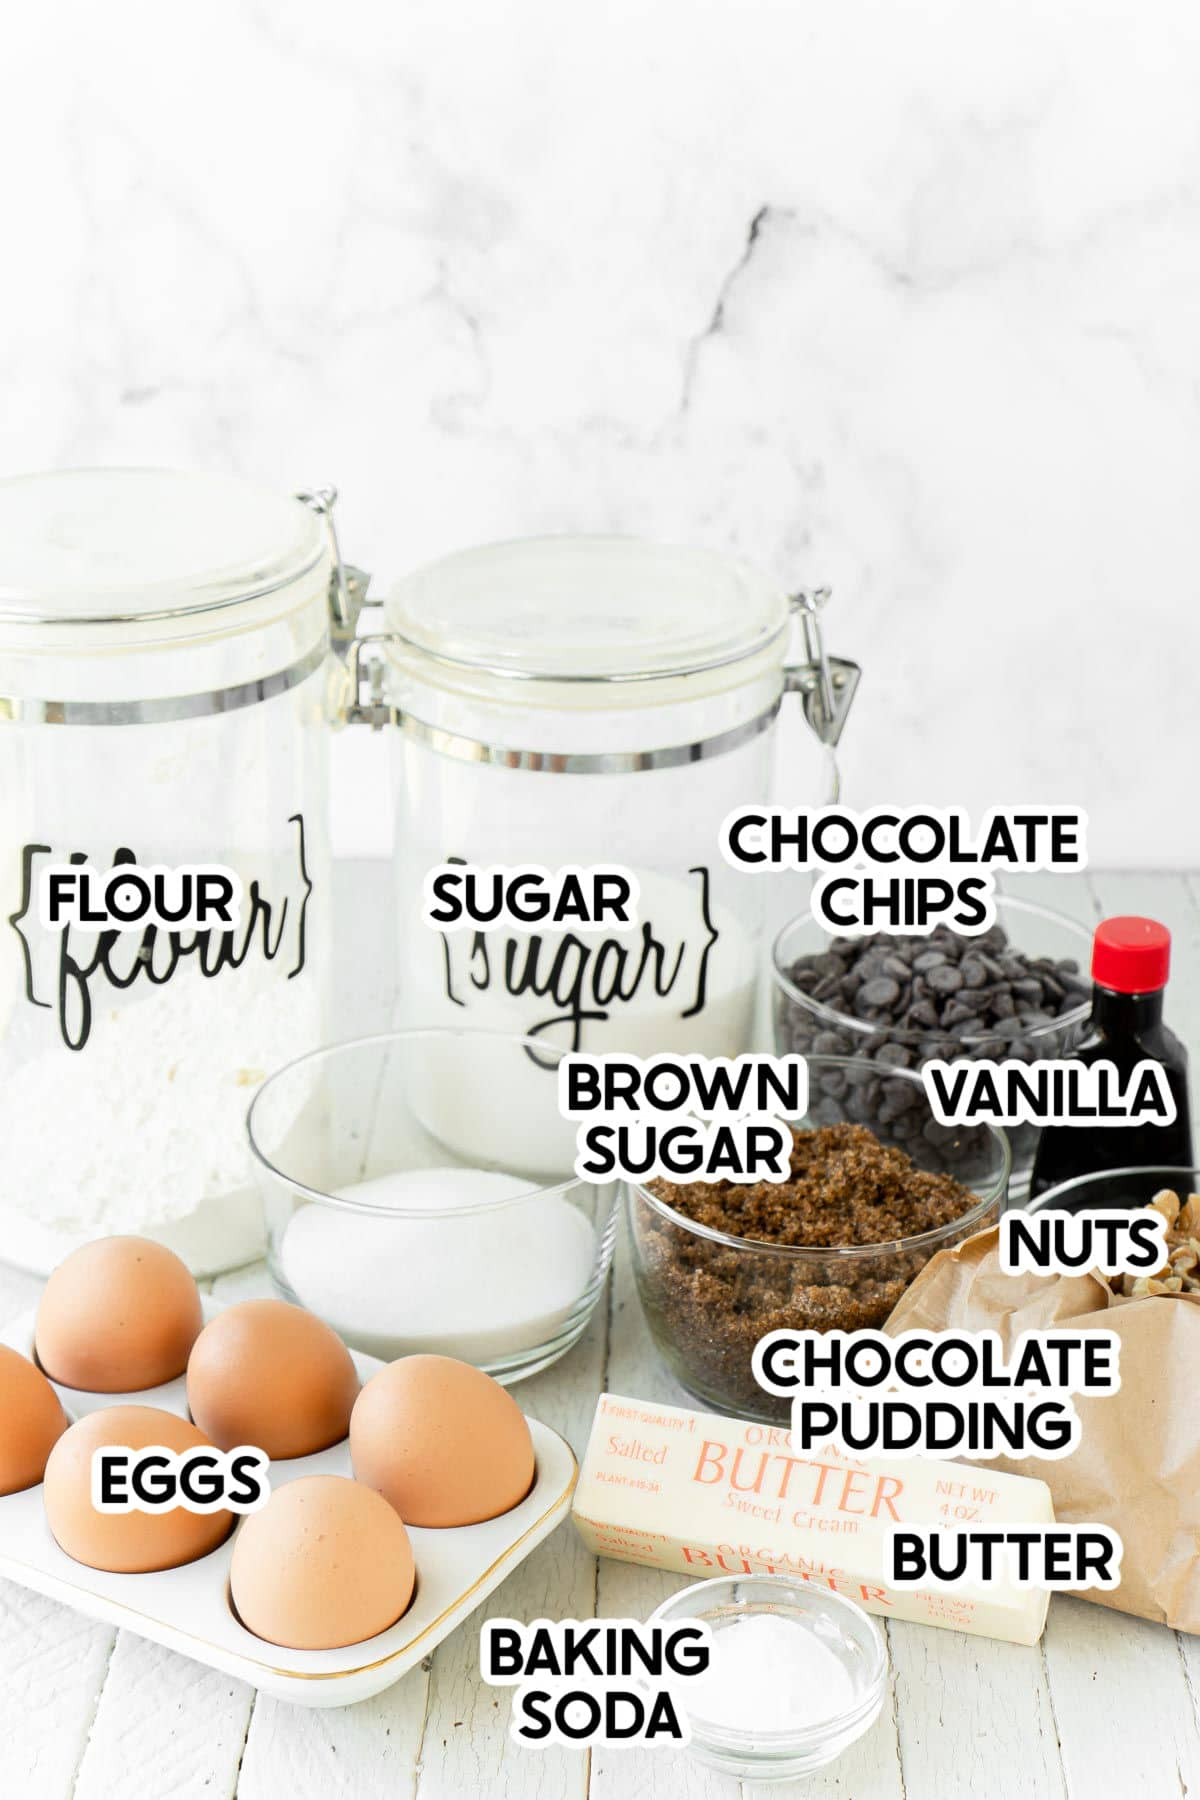 ingredients for chocolate chip pudding cookies